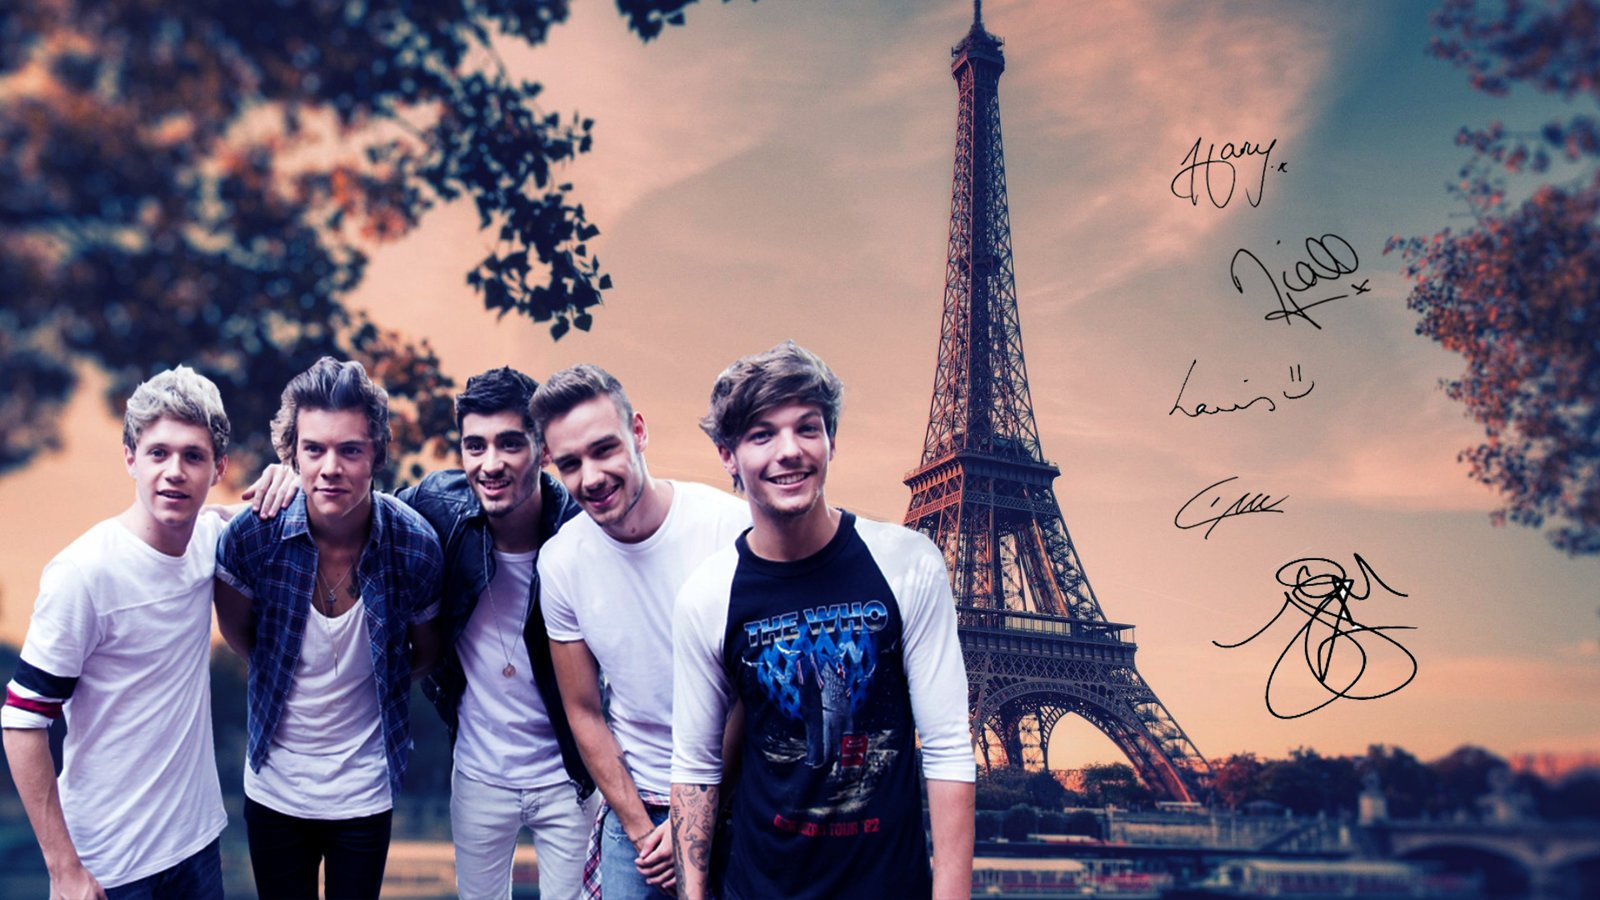 One Direction wallpaper by Madi Milkshakes 1600x900